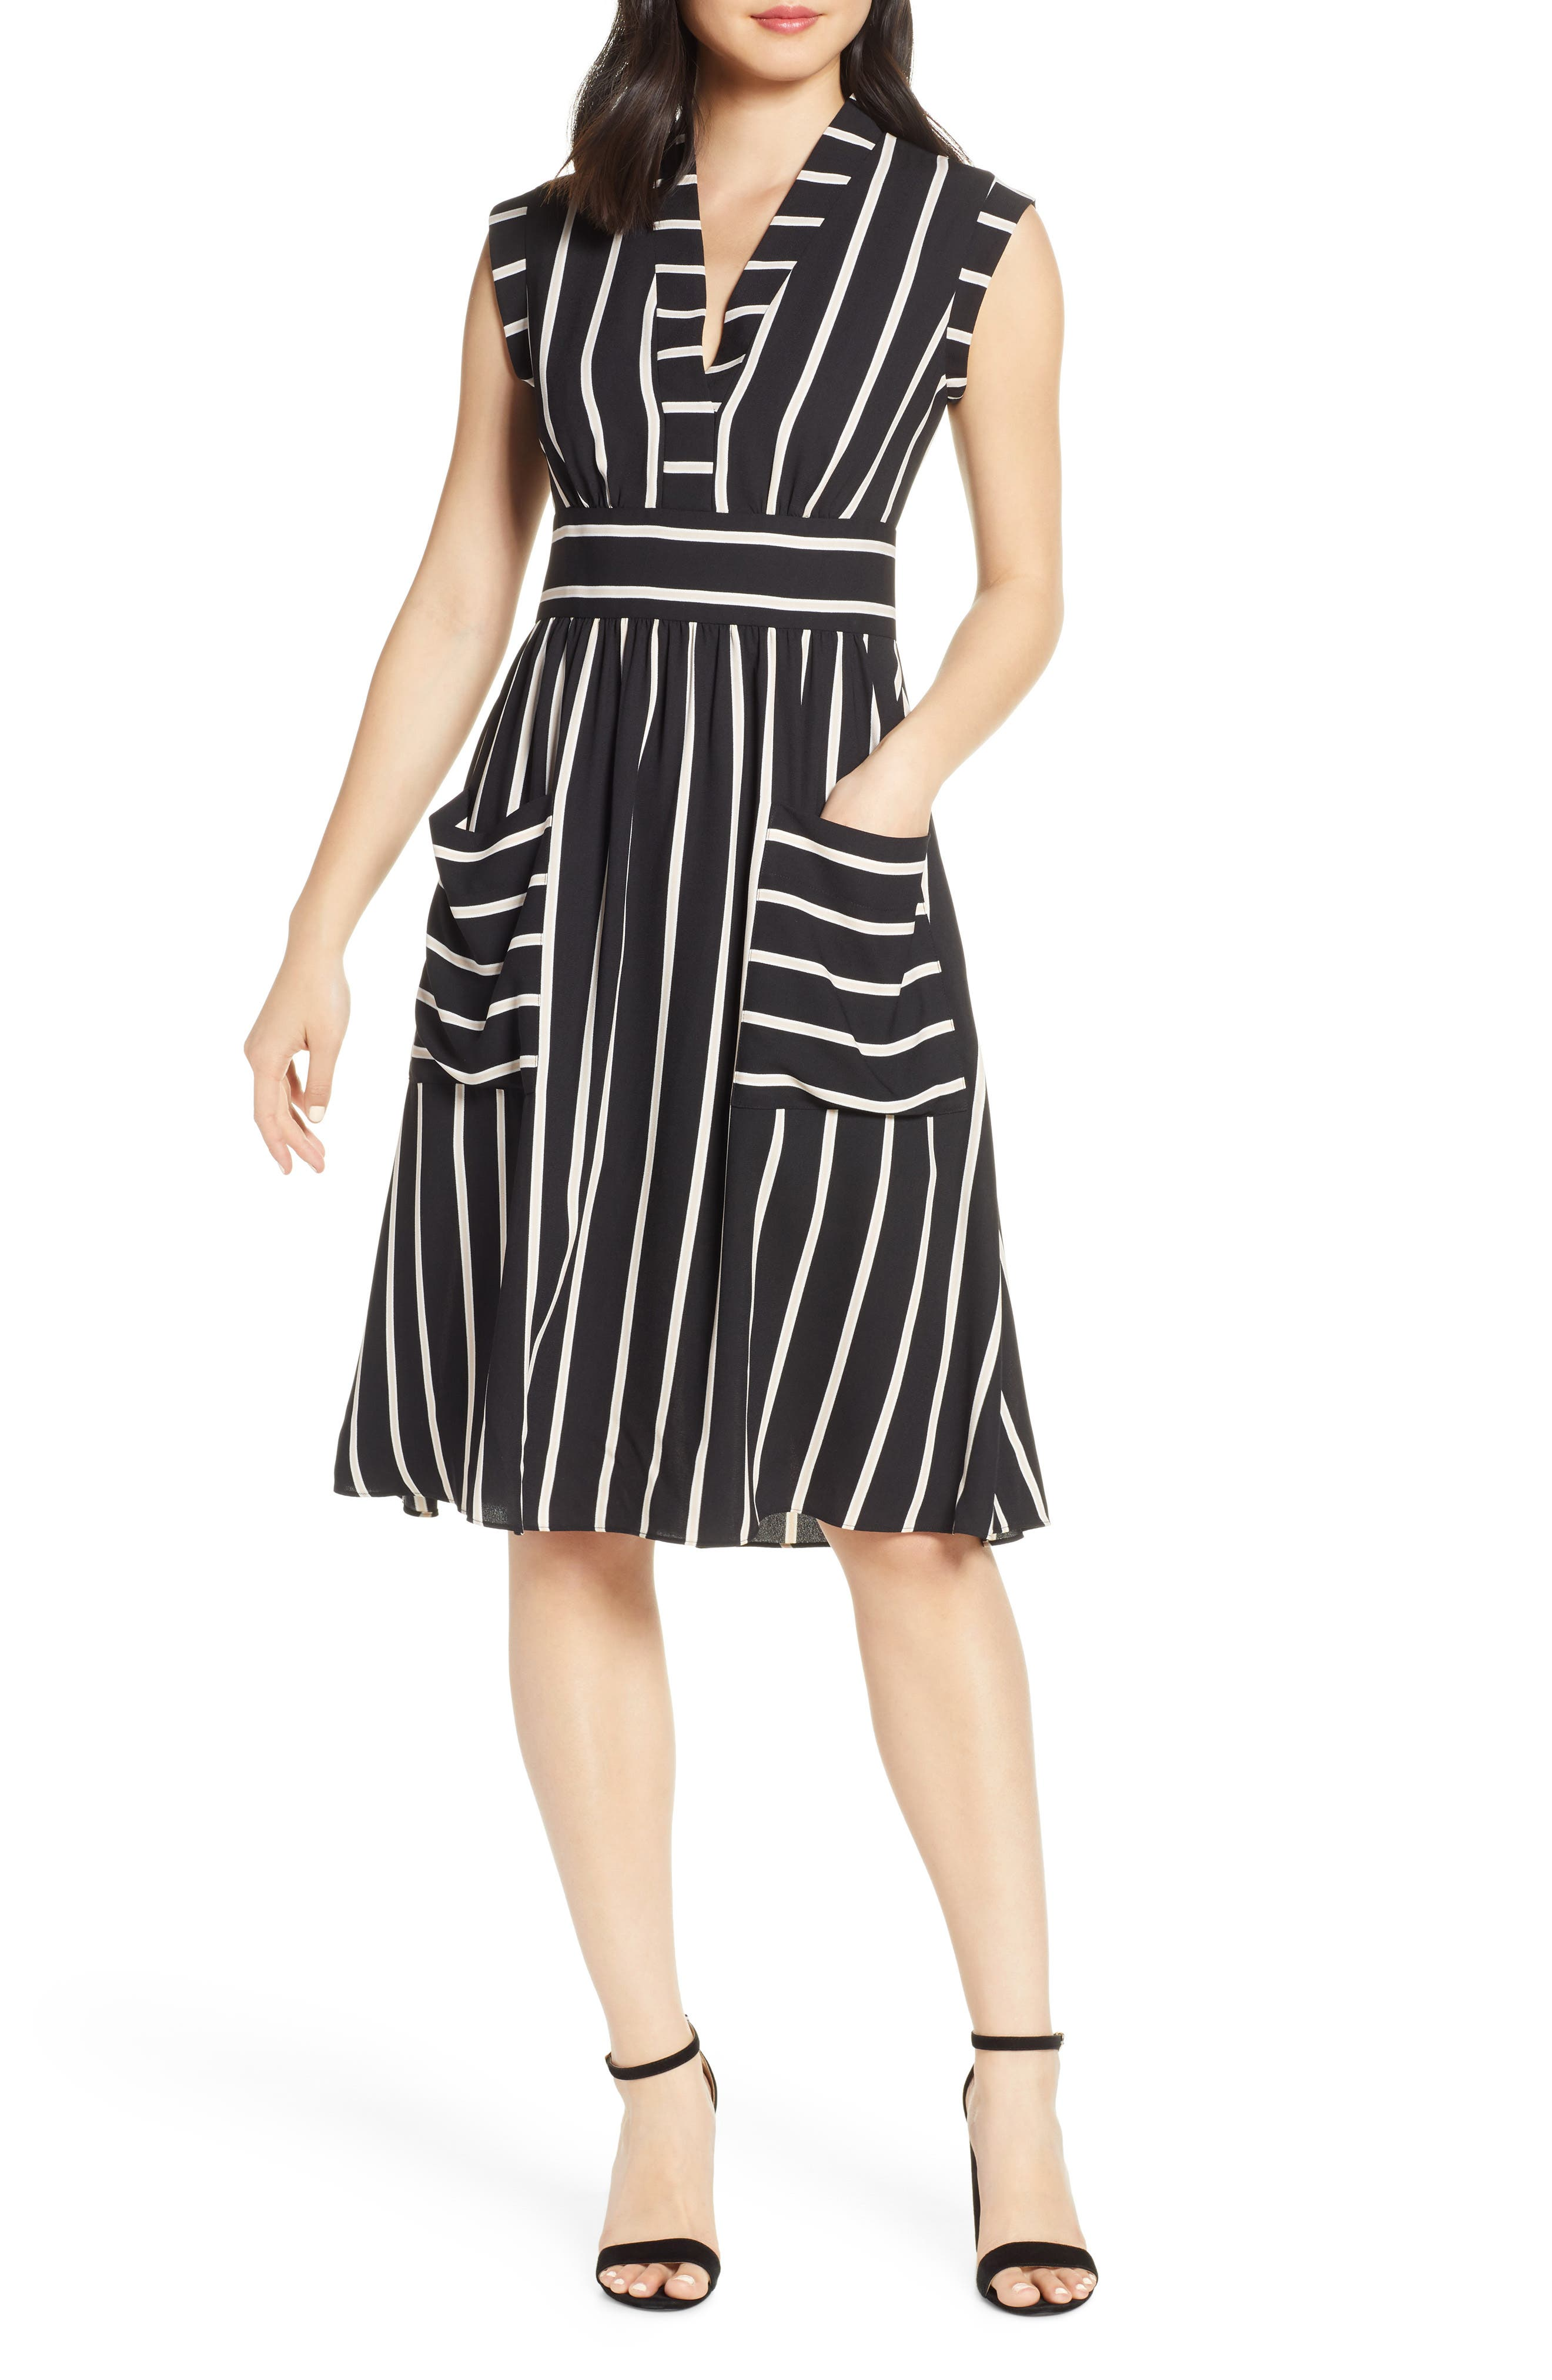 Vice Camuto Stripe Crepe Fit & Flare Dress, Black